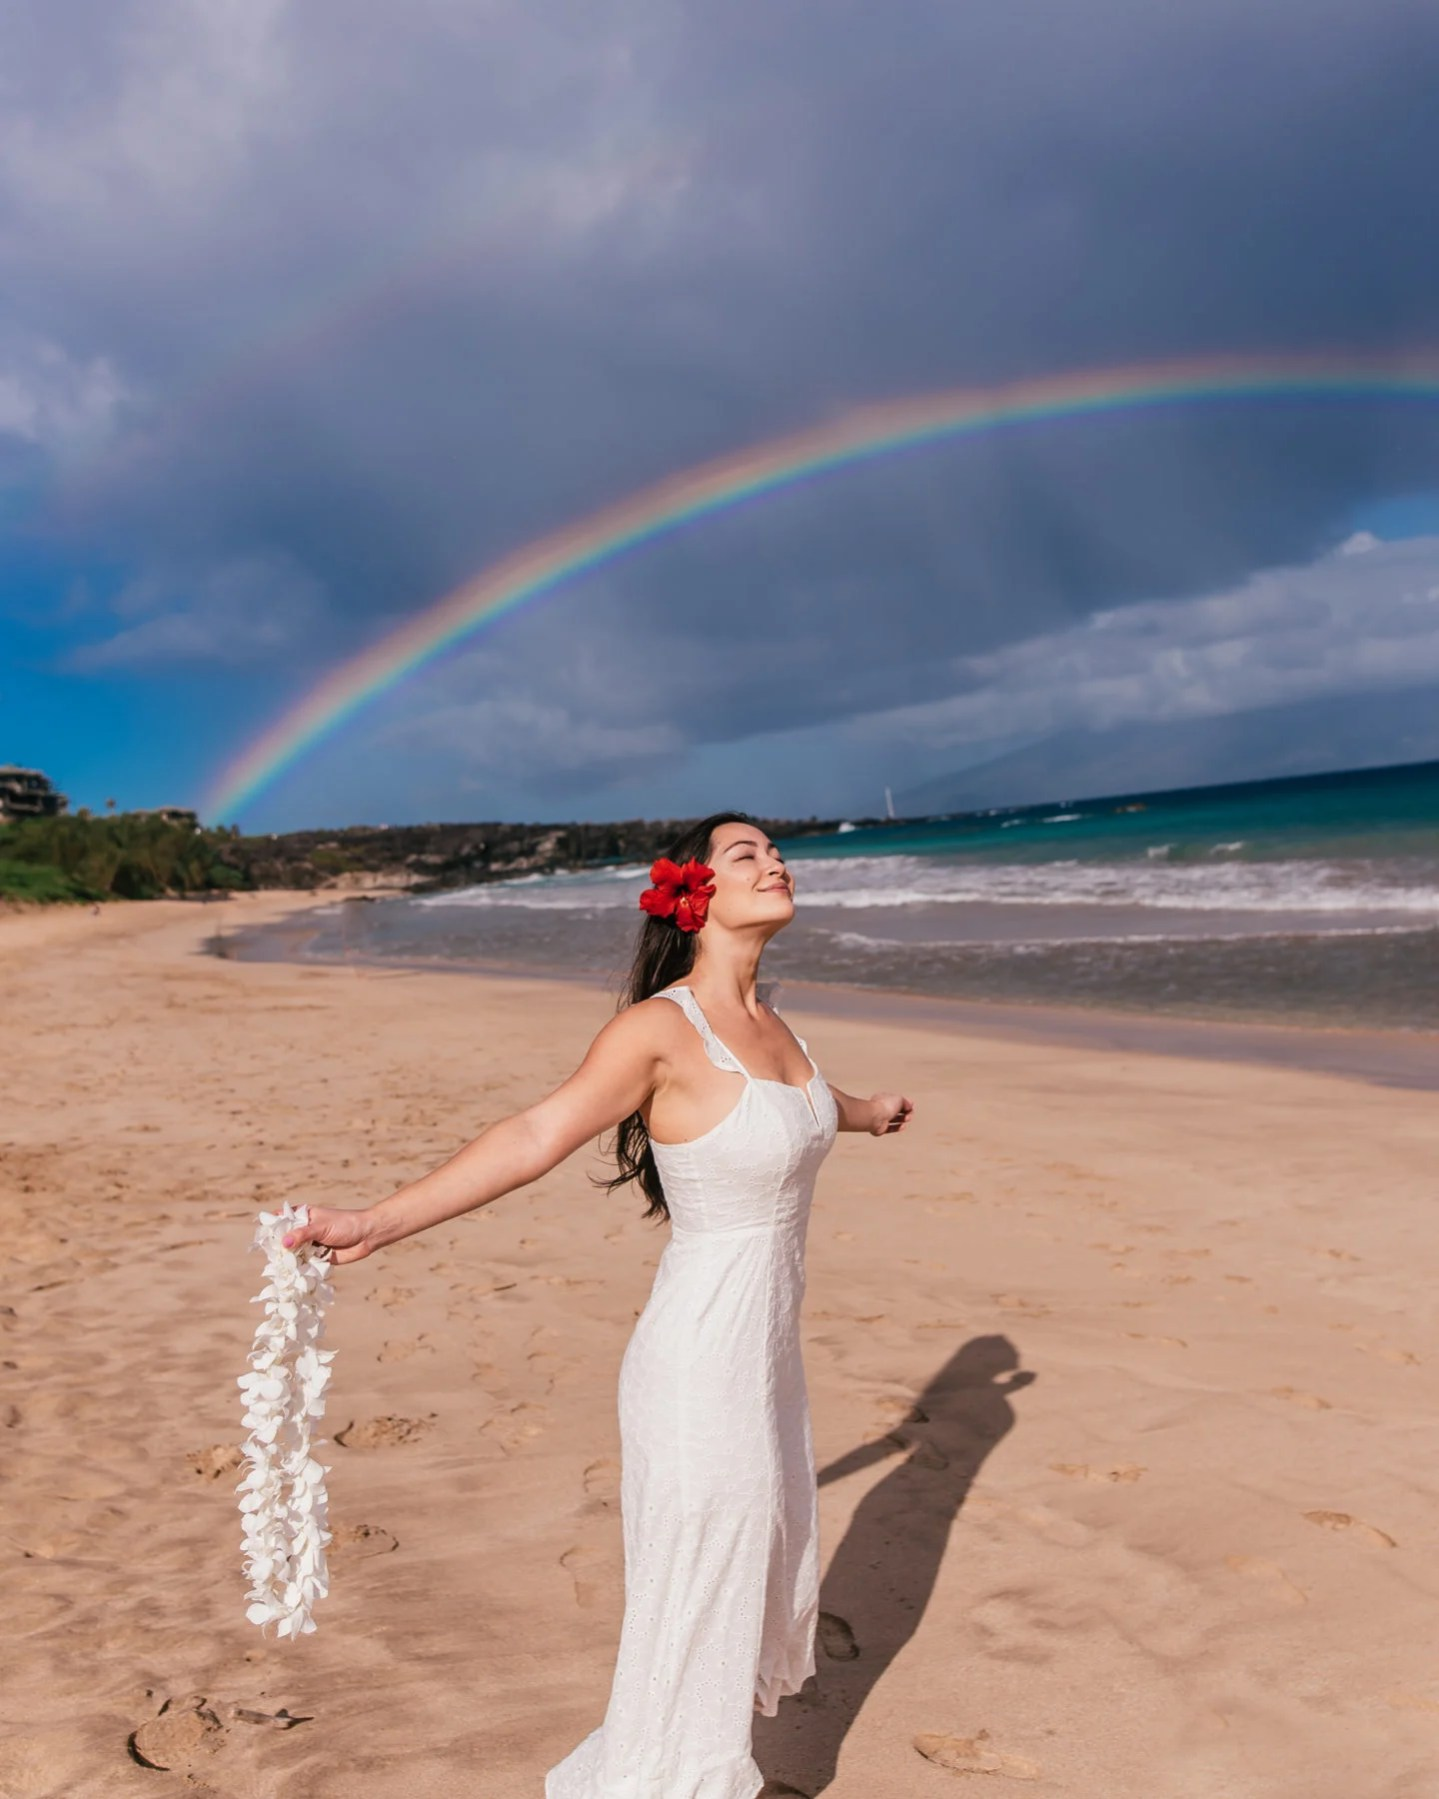 The Top 60 Most Unforgettable Things to Do in Maui